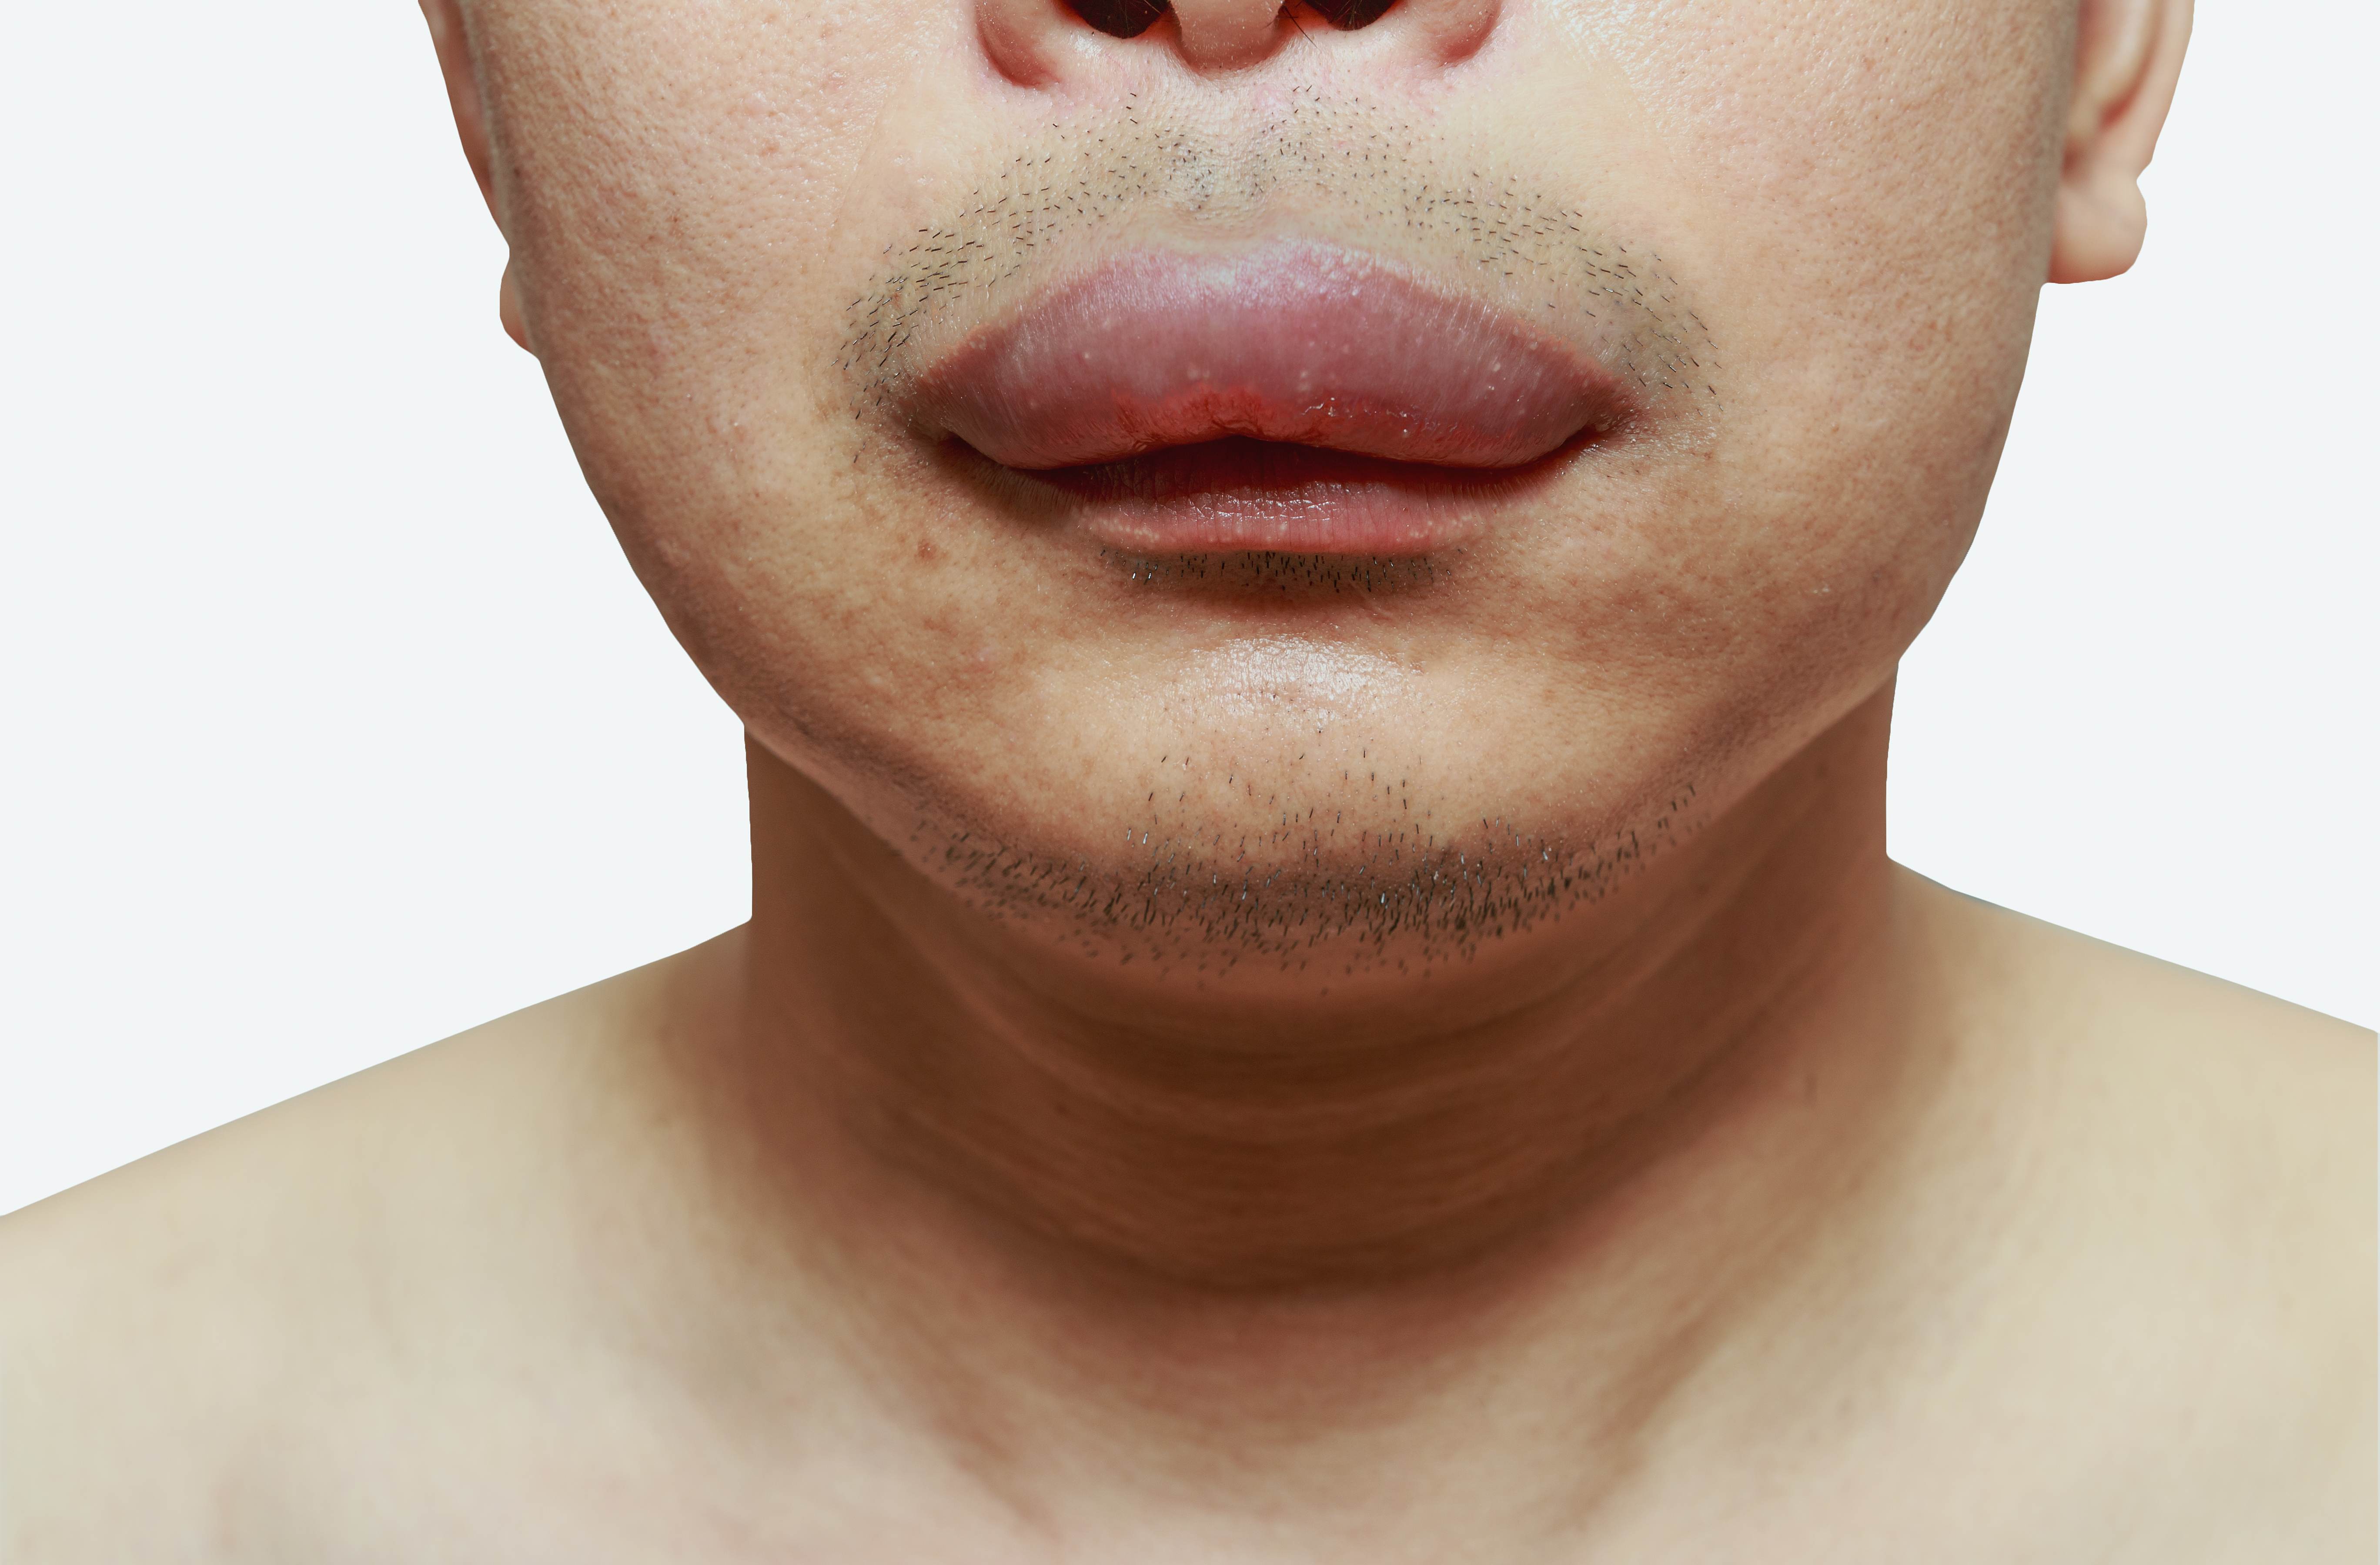 Swollen Mouth   7 Reasons for Mouth Swelling   Buoy